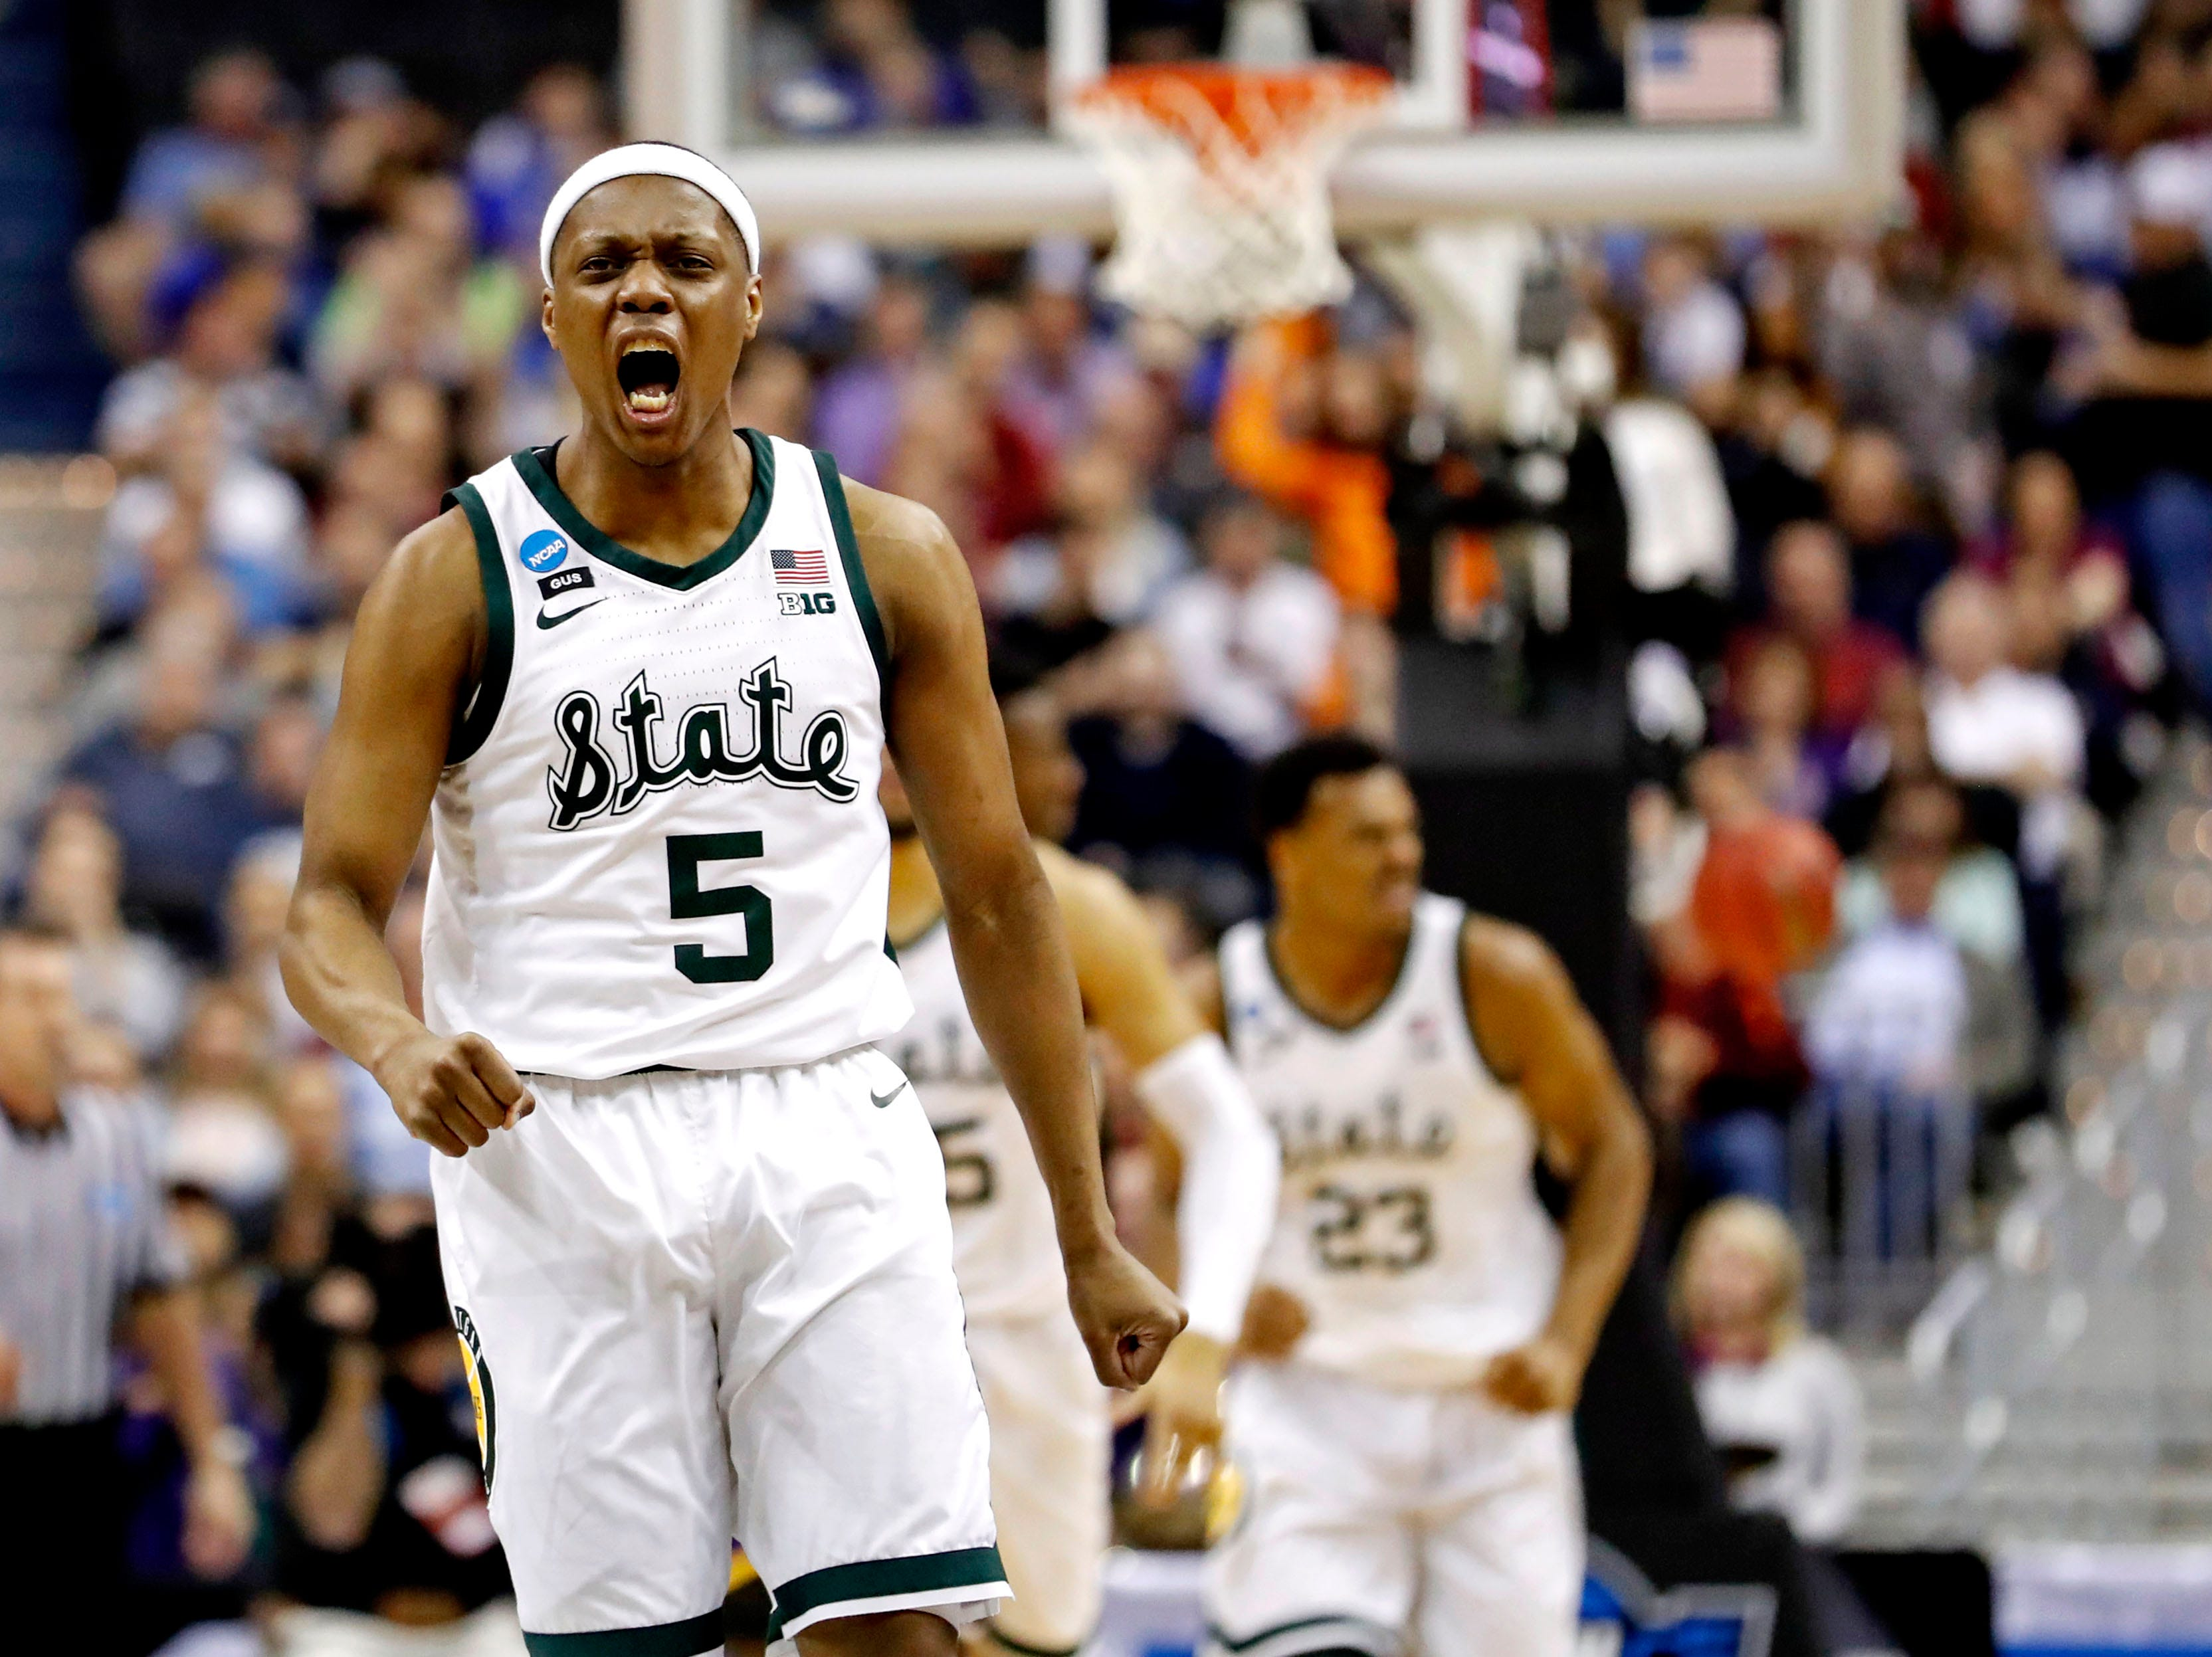 Mar 29, 2019; Washington, DC, USA; Michigan State Spartans guard Cassius Winston (5) reacts during the first half against the LSU Tigers in the semifinals of the east regional of the 2019 NCAA Tournament at Capital One Arena. Mandatory Credit: Geoff Burke-USA TODAY Sports